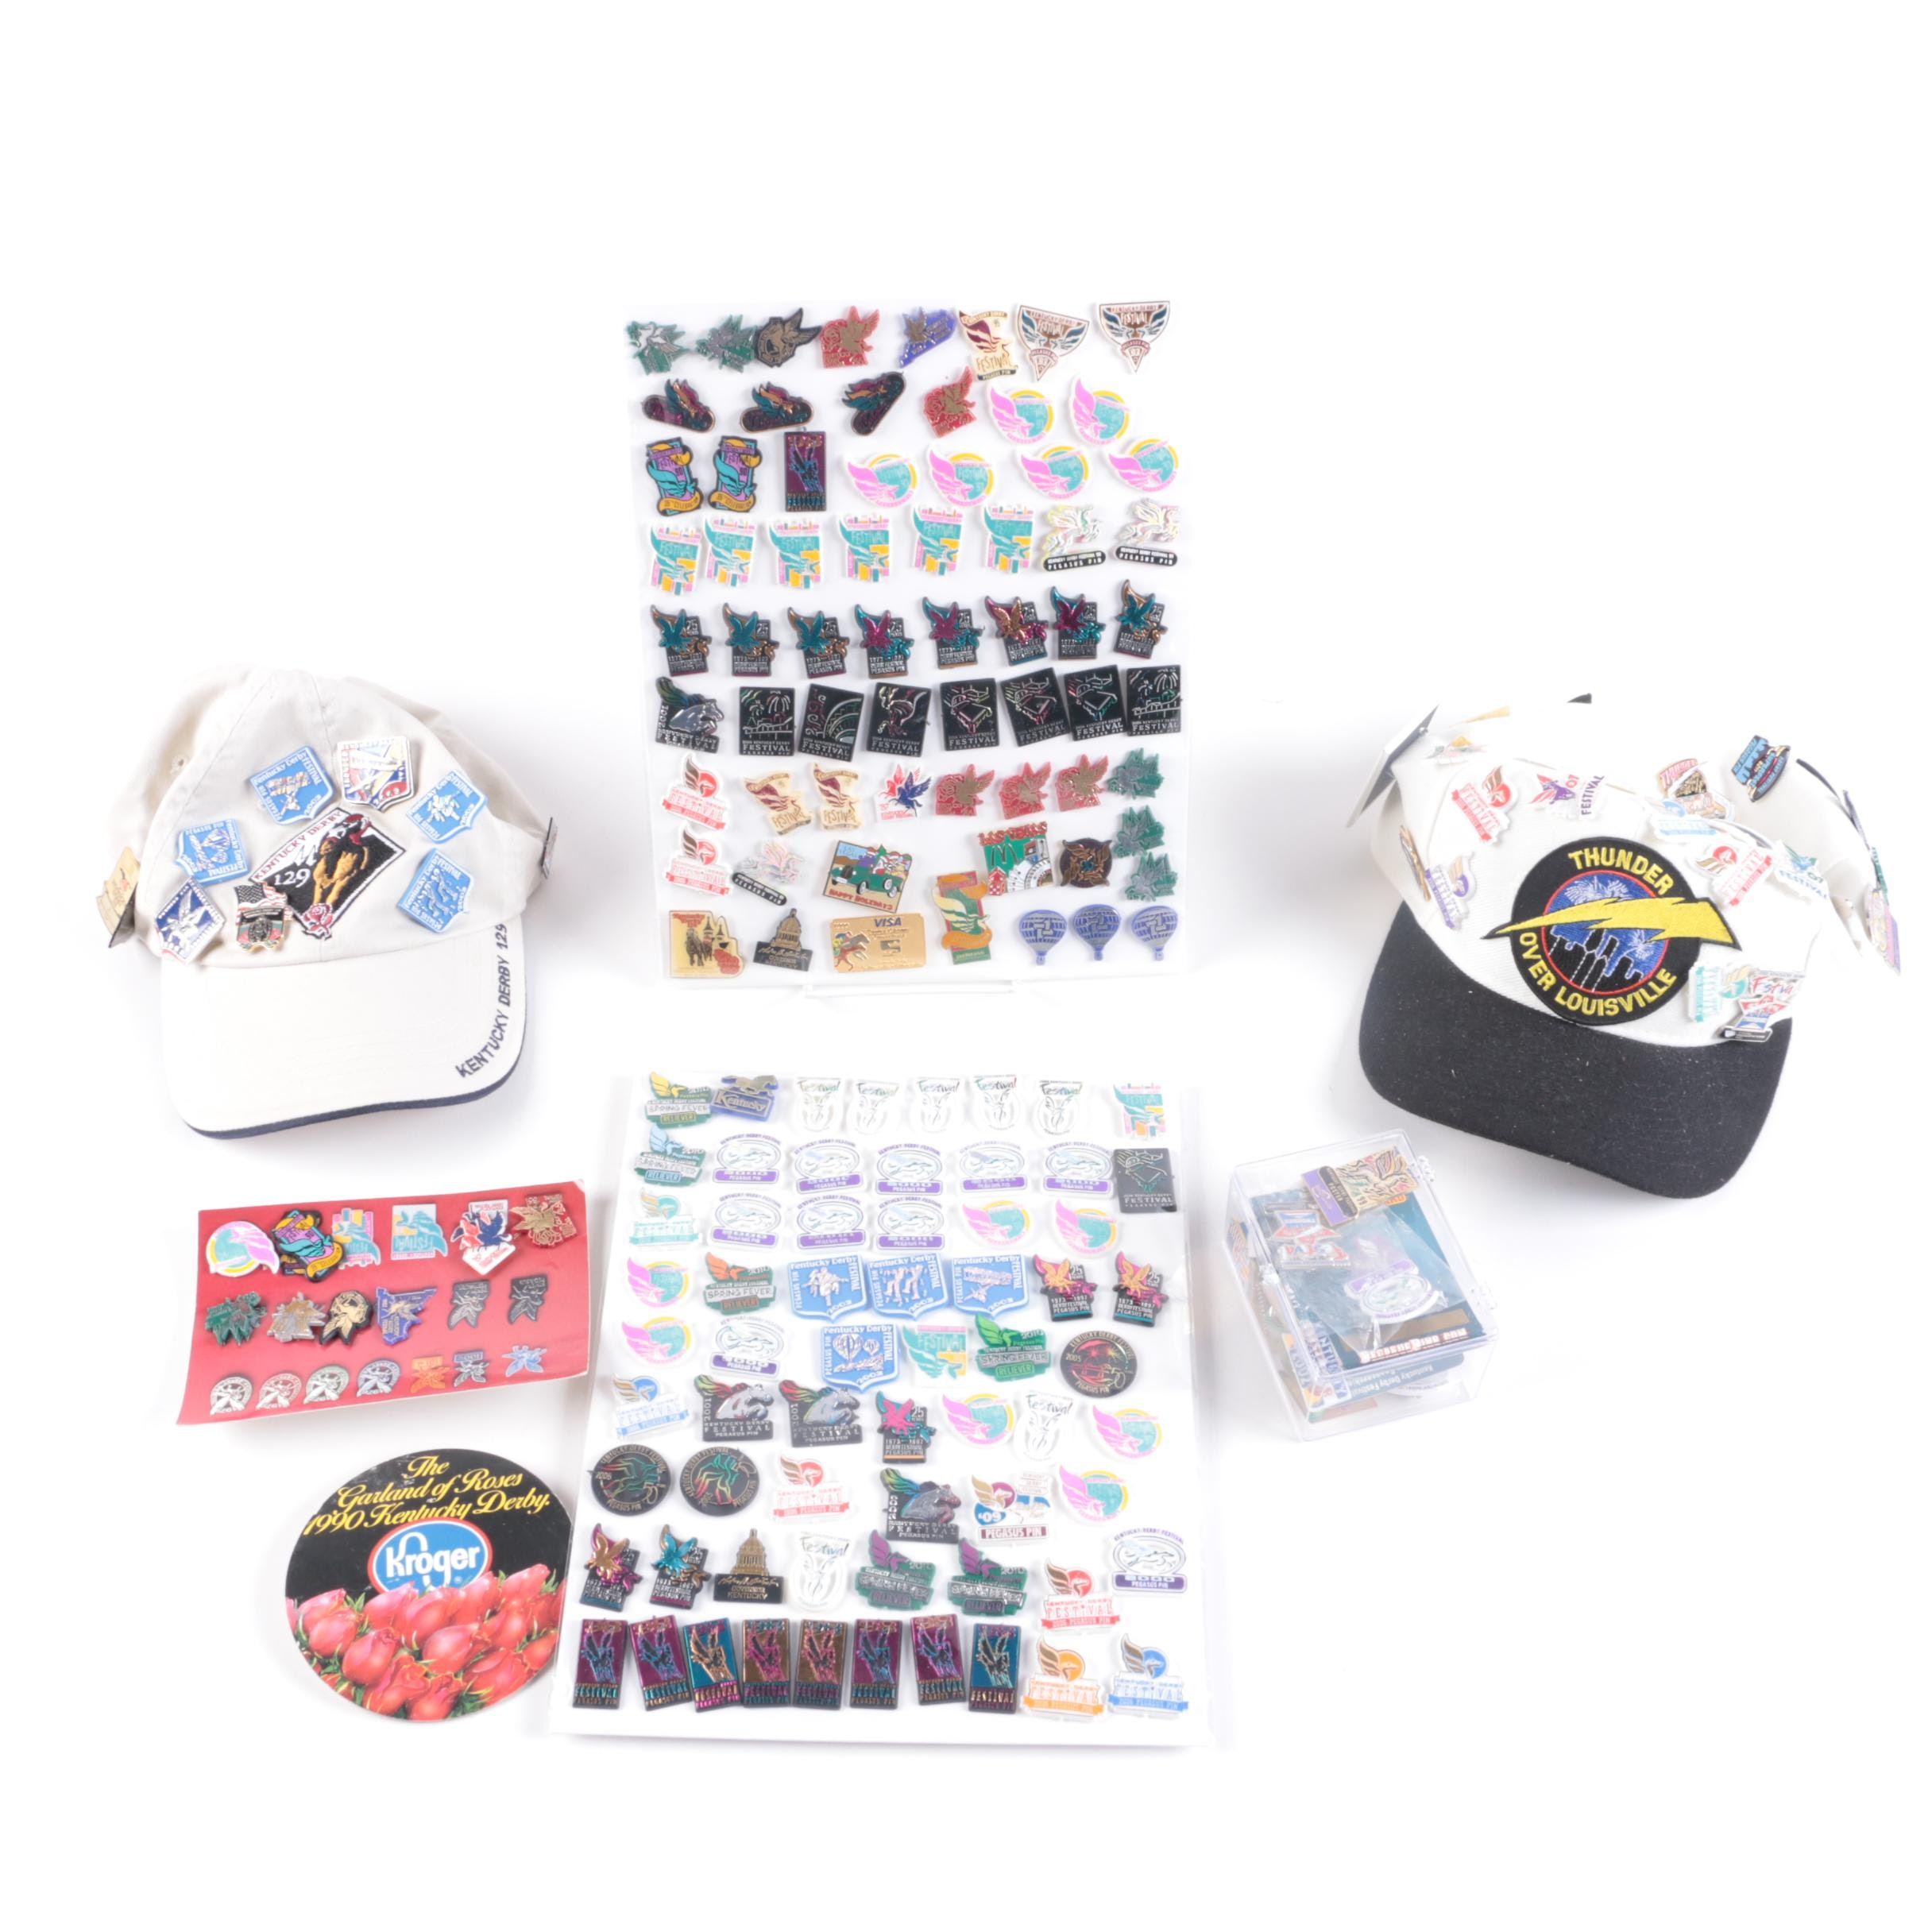 Collection of Kentucky Derby Caps and Lapel Pins